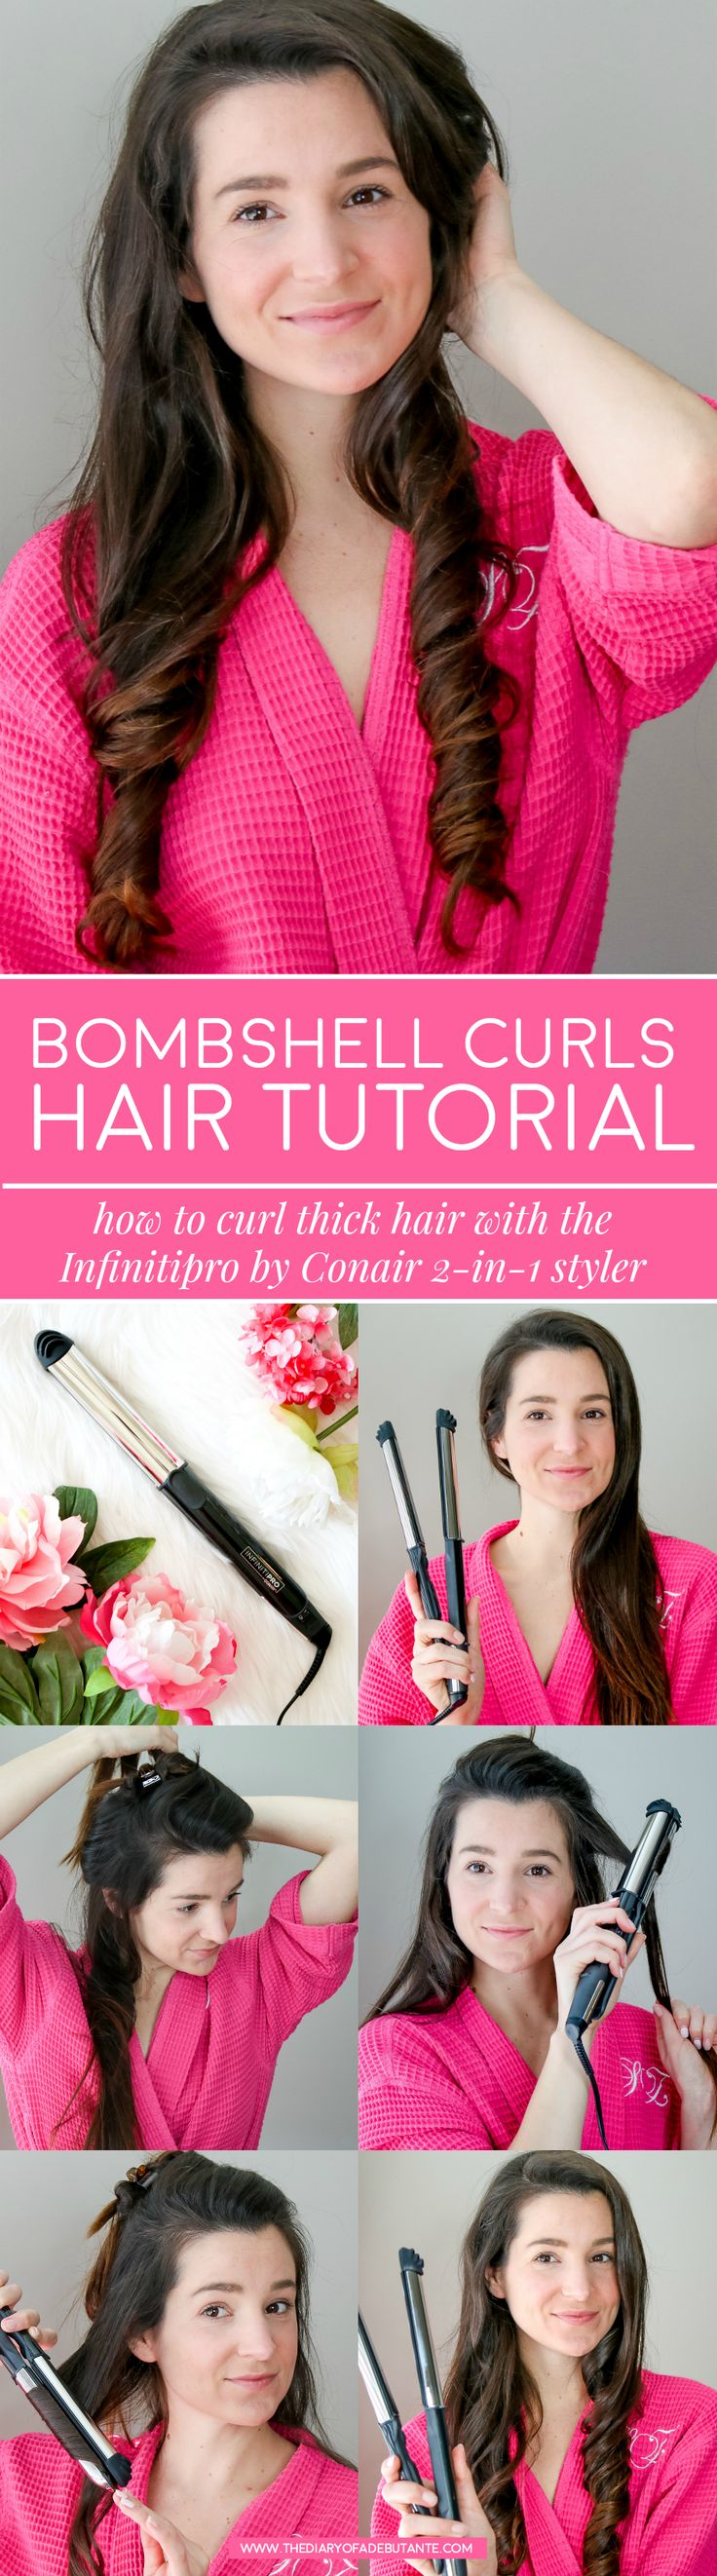 Conair 3Q blow dryer and Conair 2-in-1 styler review | How to use the InfinitiPRO by Conair 2-in-1 Styler | How to use the InfinitiPRO by Conair 3Q Compact Styler | The best blow dryer for thick coarse hair and best 2-in-1 styler from Conair | Conair's best hair styling tools for women | The Countdown to Styling: 2 Conair Styling tools Every Girl Needs to Try by blogger and retired beauty queen Stephanie Ziajka from Diary of a Debutante